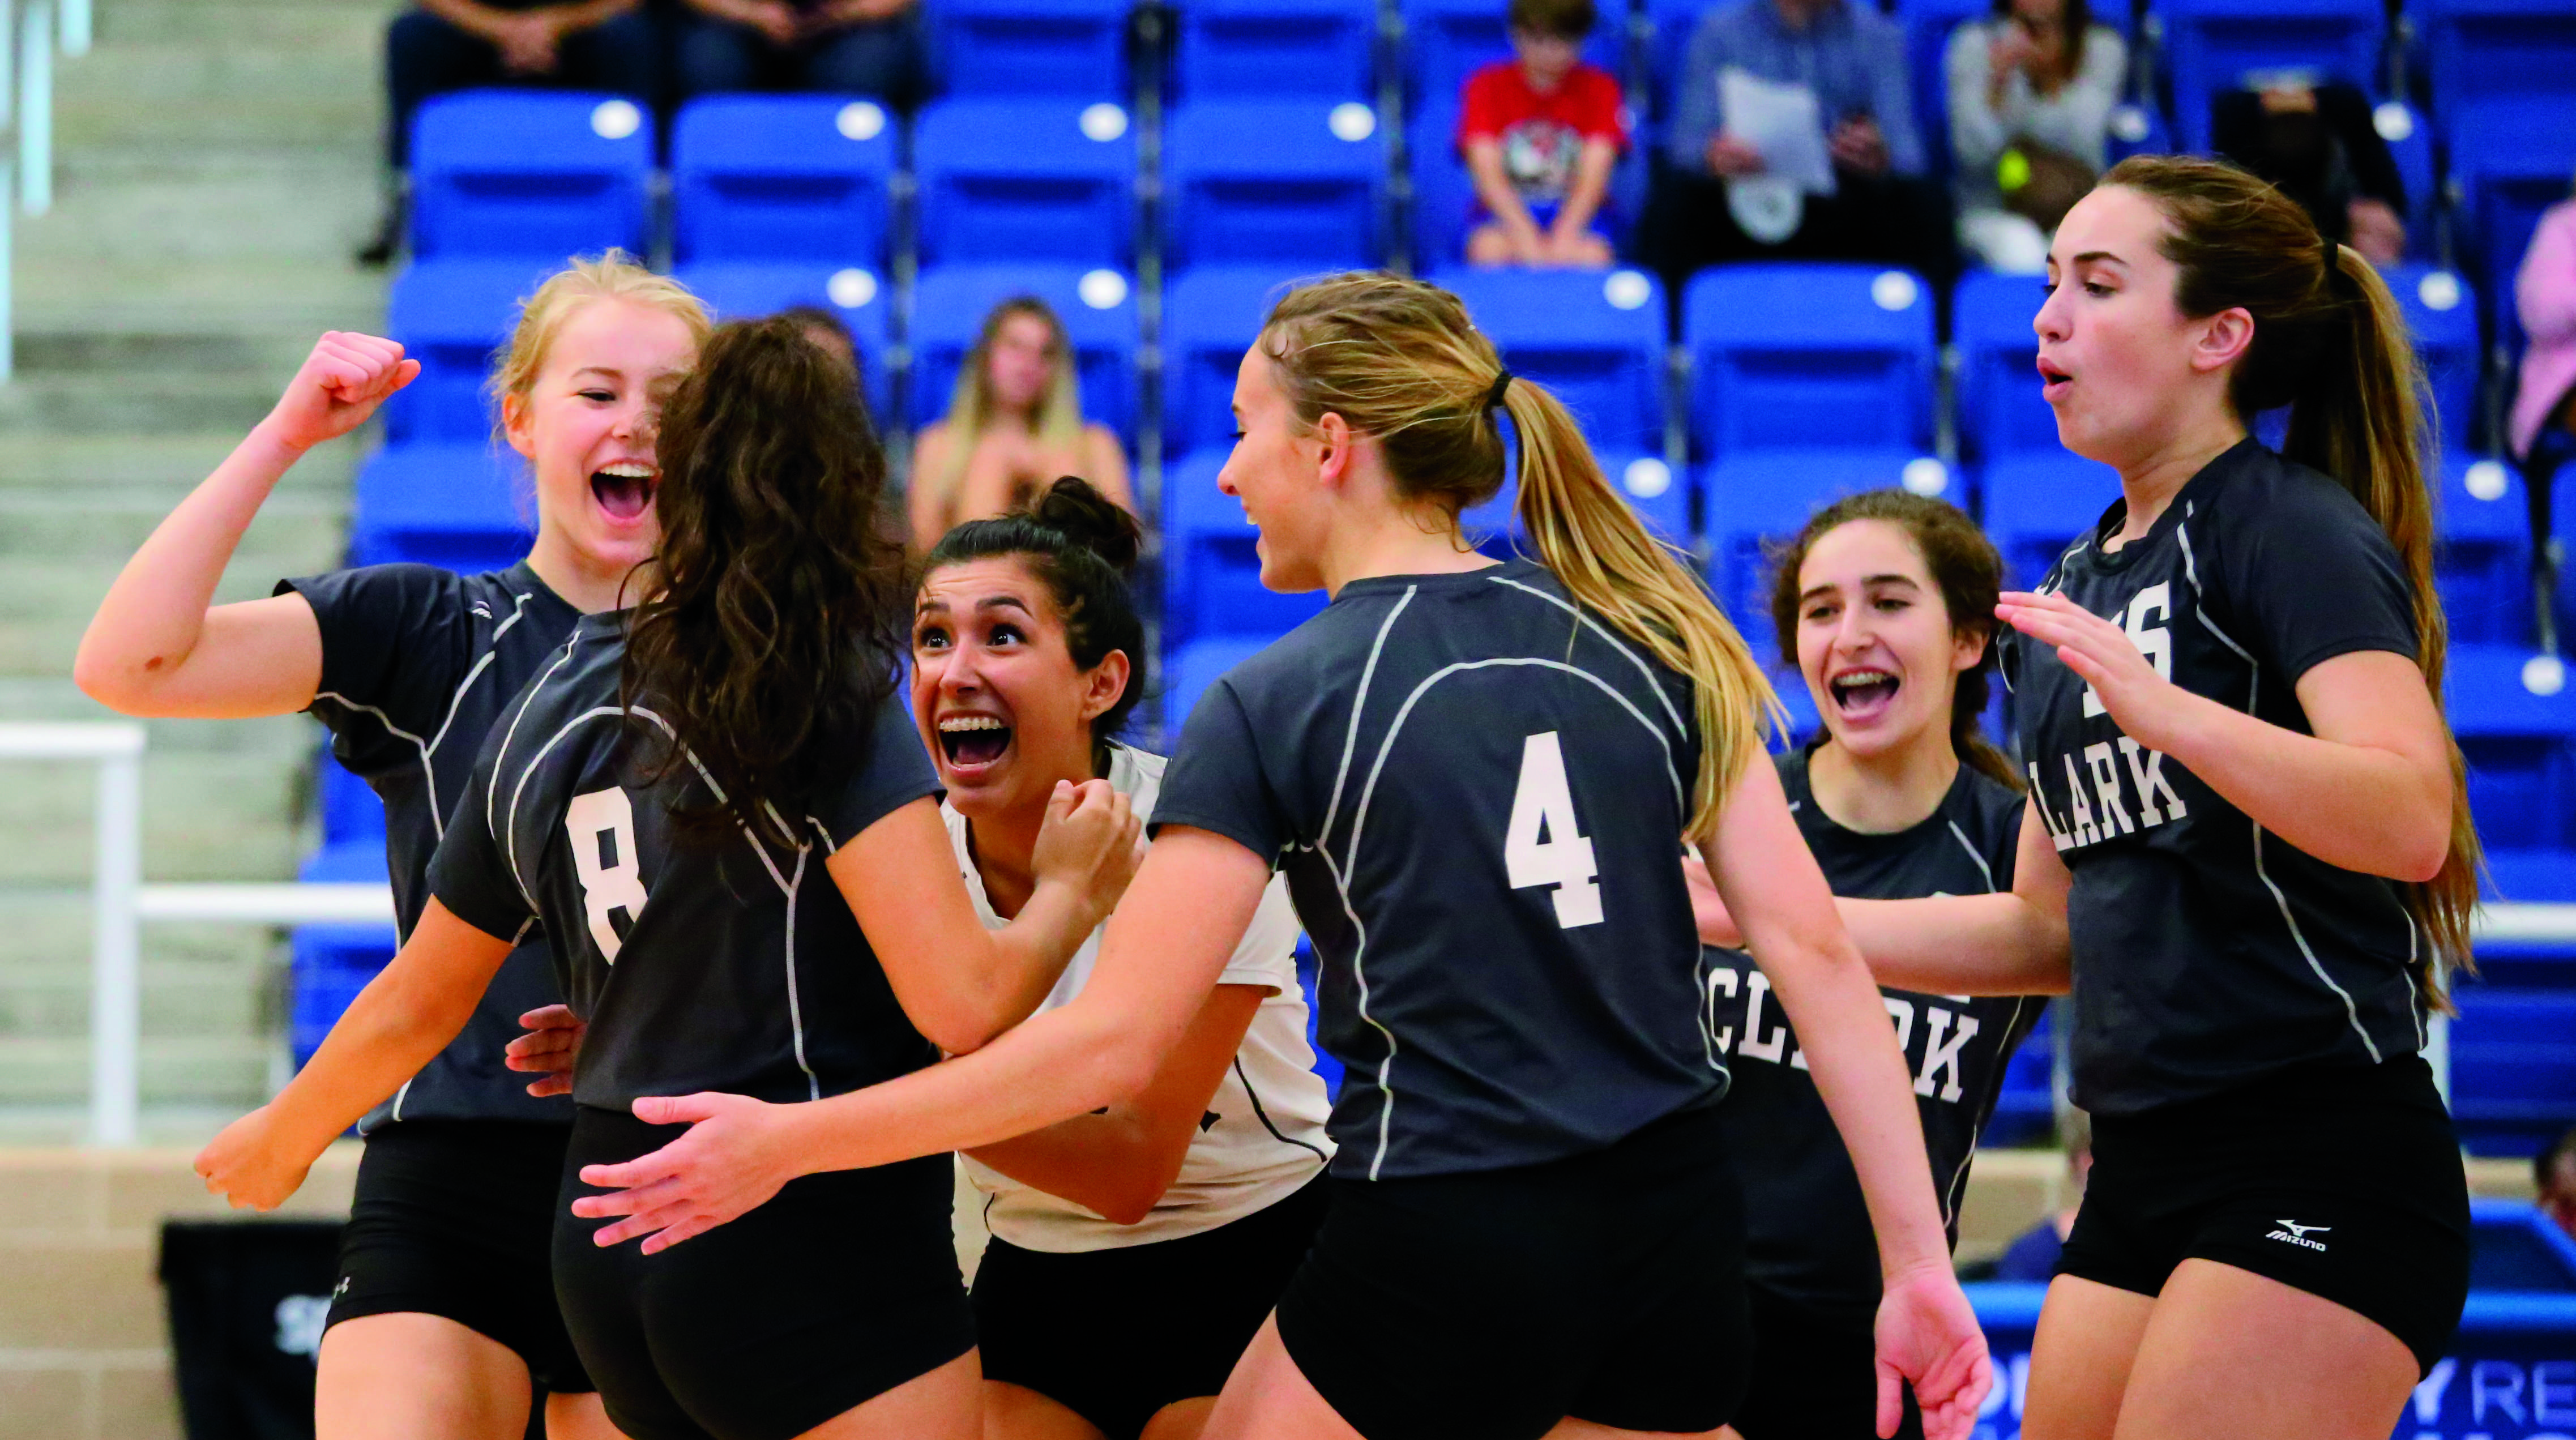 Photo By Joseph Richards Tom C Clark High School San Antonio Texas Emotion Freezing Action Framing Shallo Sports Photos Fall Sports Volleyball Pictures